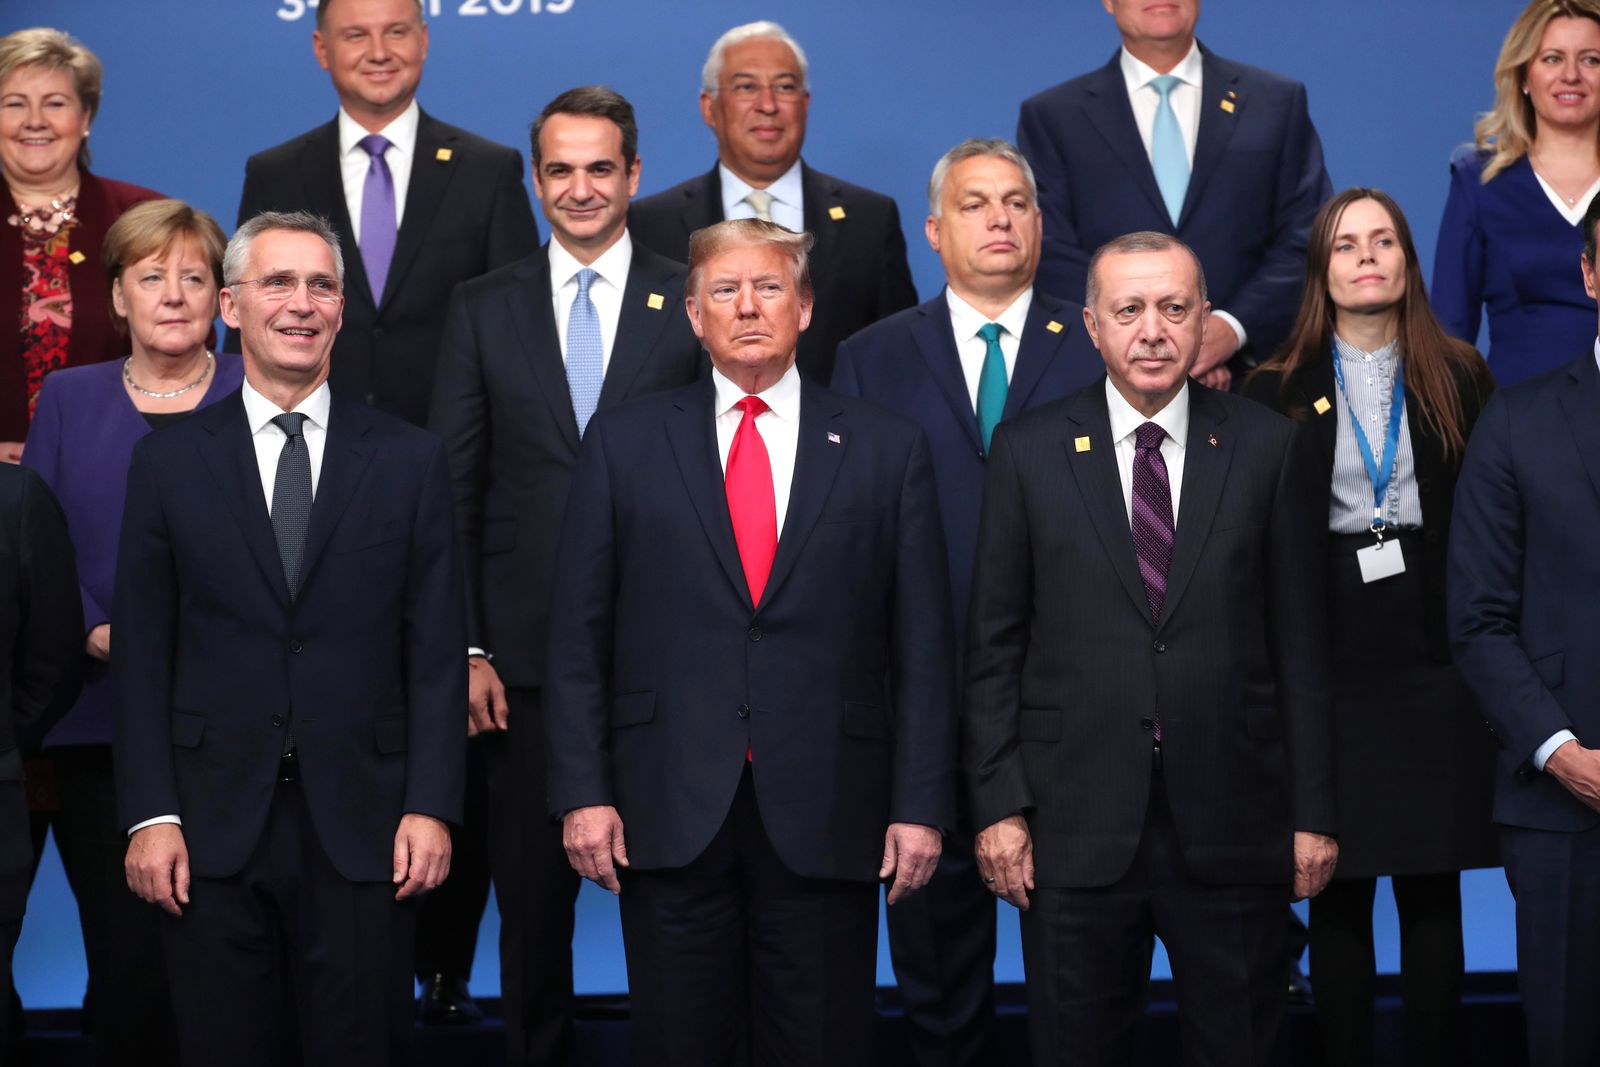 U.S. President Donald Trump, center, front, NATO Secretary General Jens Stoltenberg, center left, and Turkish President Recep Tayyip Erdogan, front right, pose with other NATO heads of state for a group photo during a NATO leaders meeting at The Grove hotel and resort in Watford, Hertfordshire, England, Wednesday, Dec. 4, 2019.. (AP Photo/Francisco Seco)